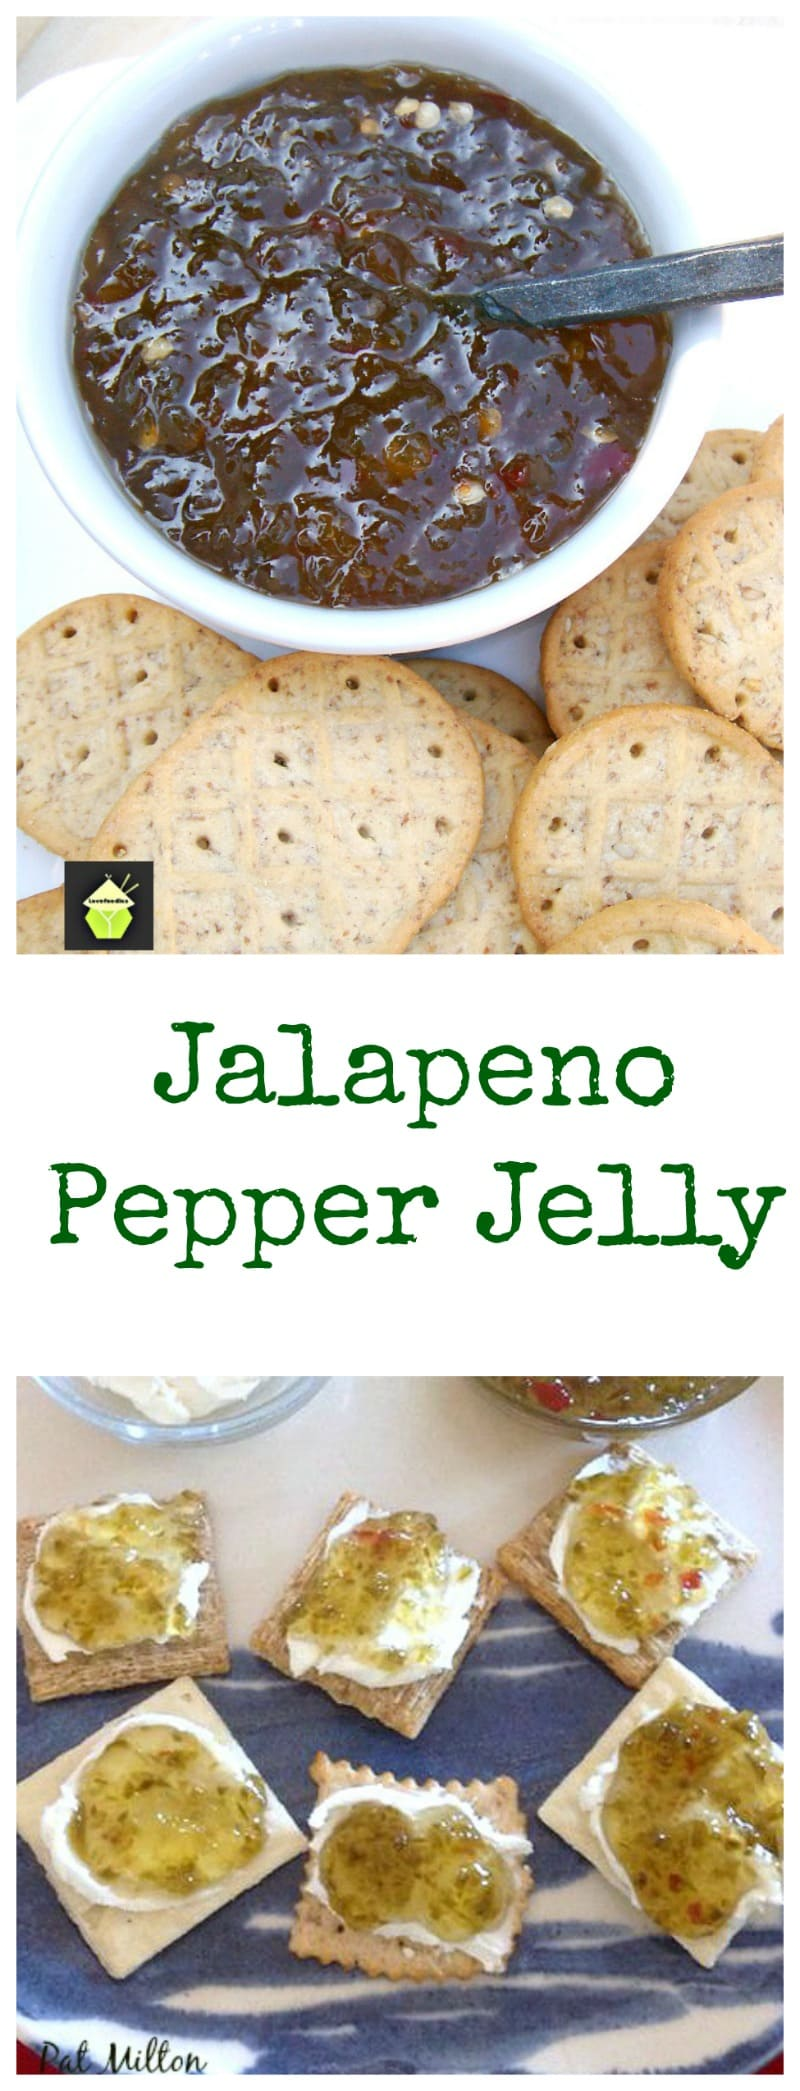 Nanny's Easy Jalapeno Pepper Jelly Great recipe and delicious served on crackers with cream cheese!